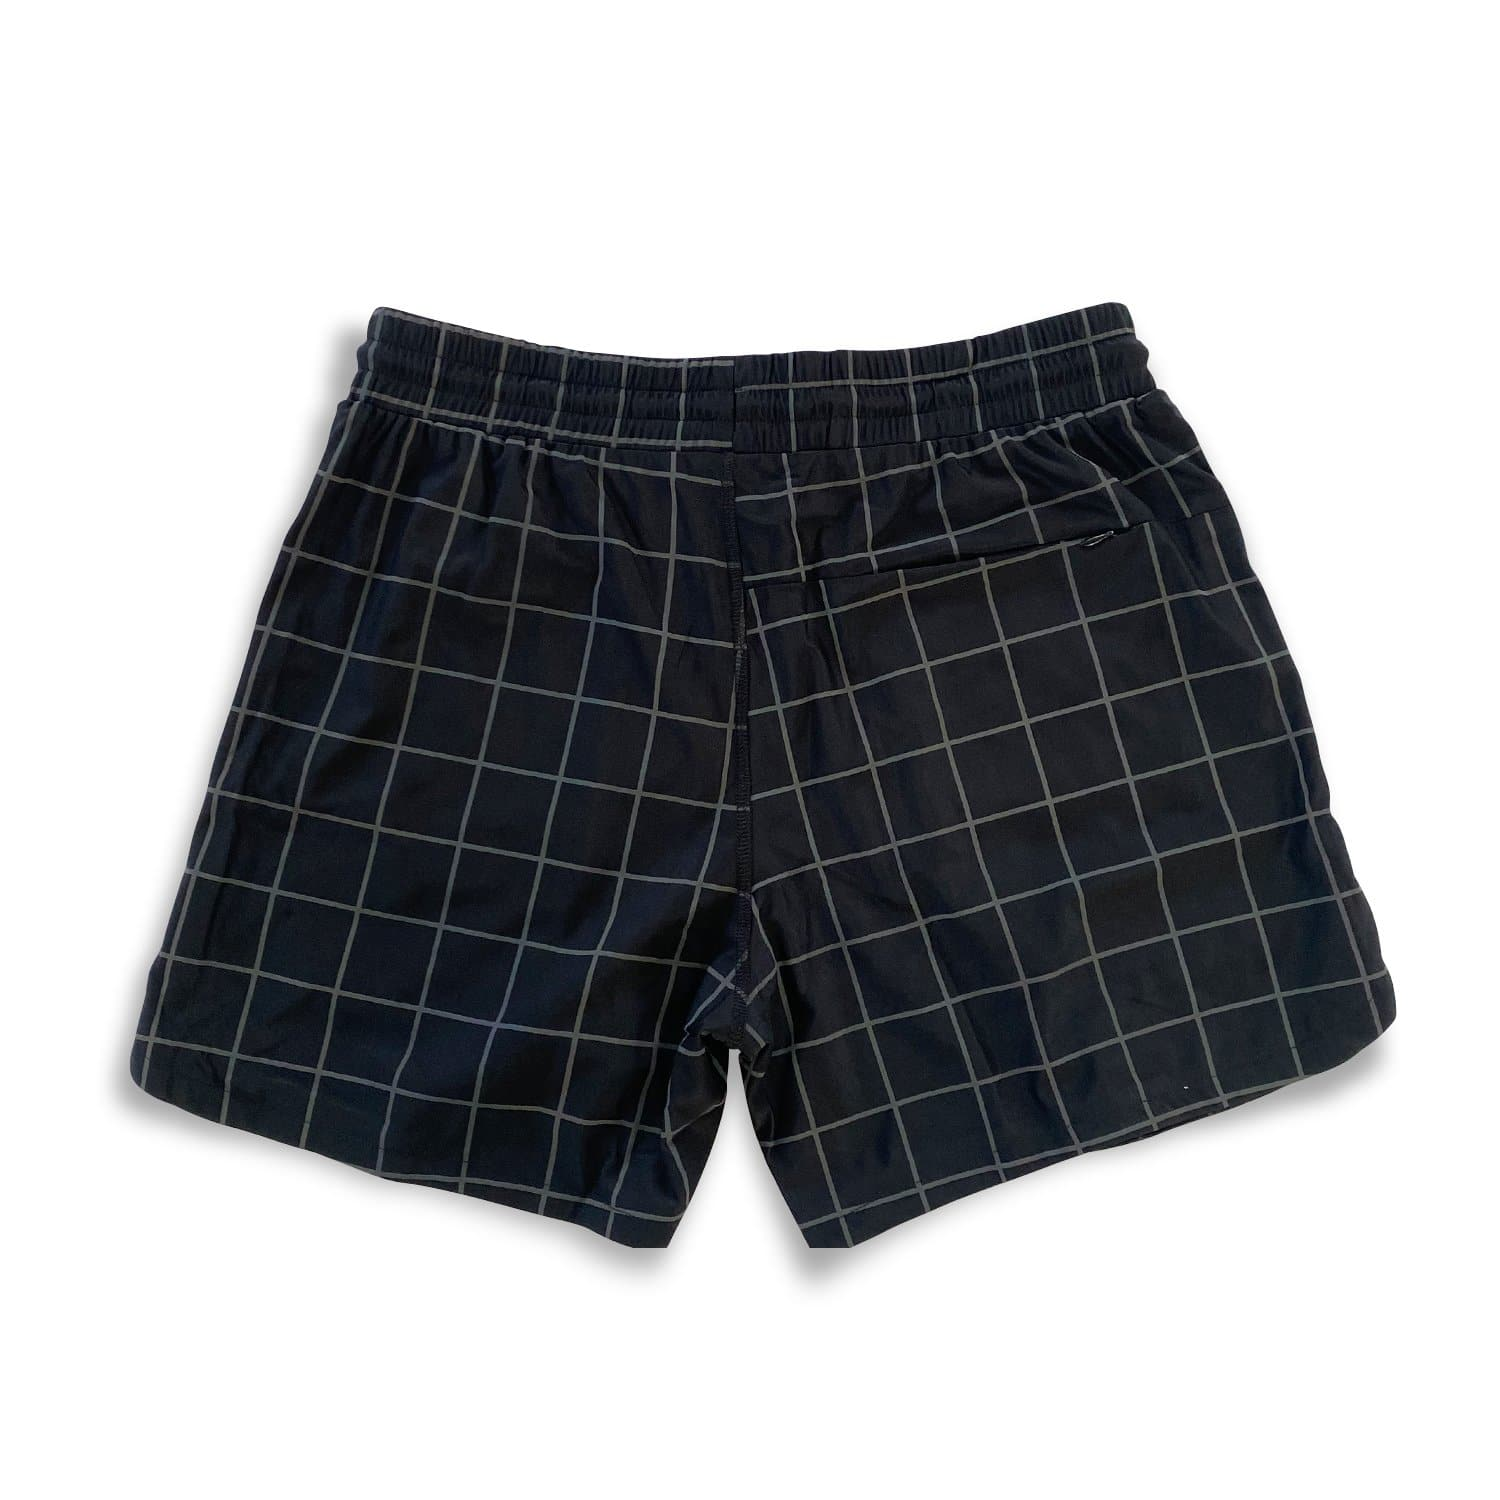 "Men's Active Linerless Shorts 5"" - GRID Reflective"